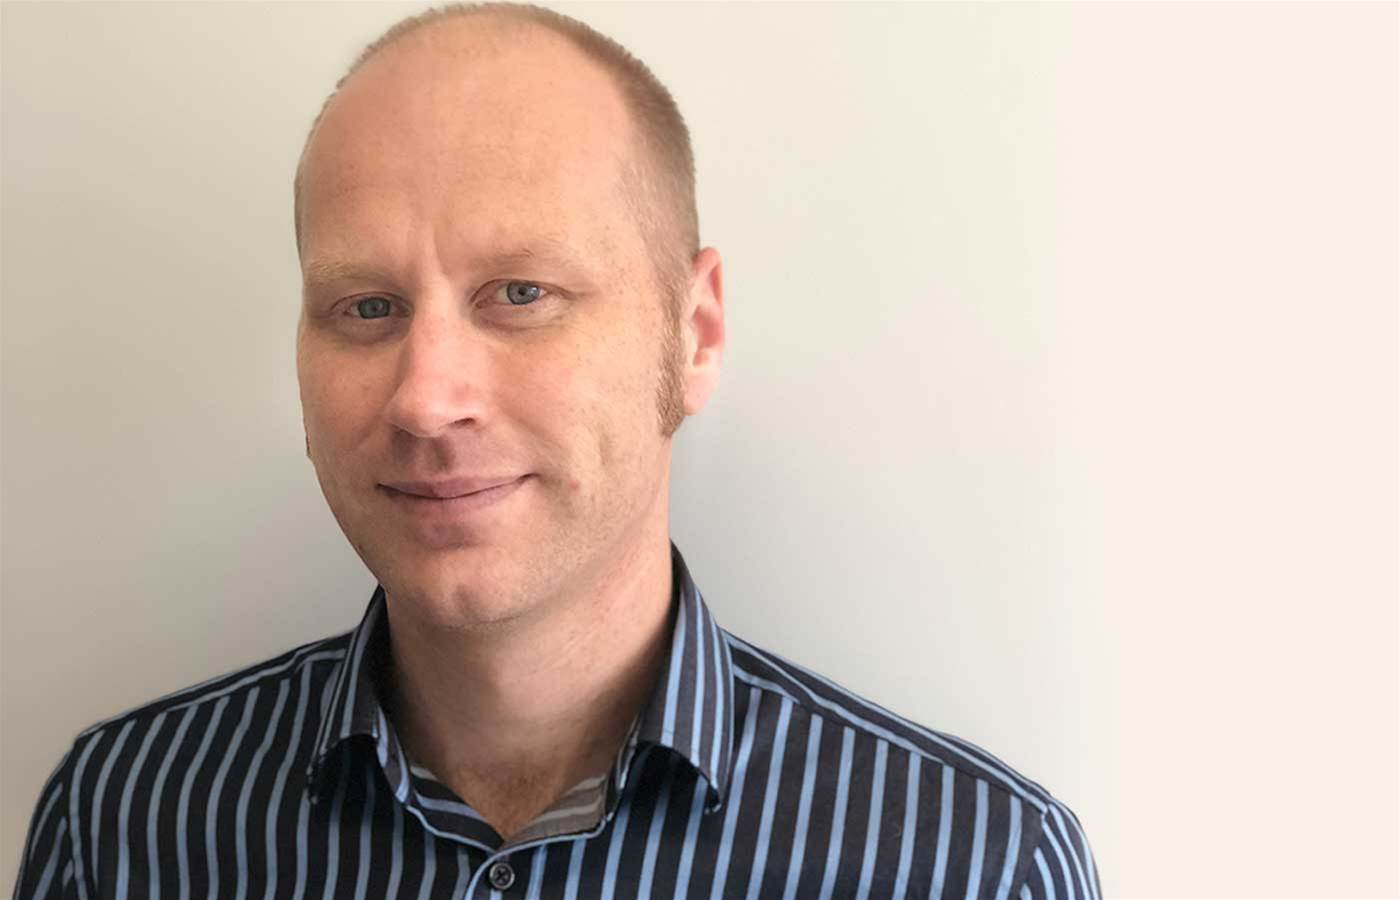 Thomas Duryea Logicalis hires Brett White as chief security officer for hire from Juniper Networks